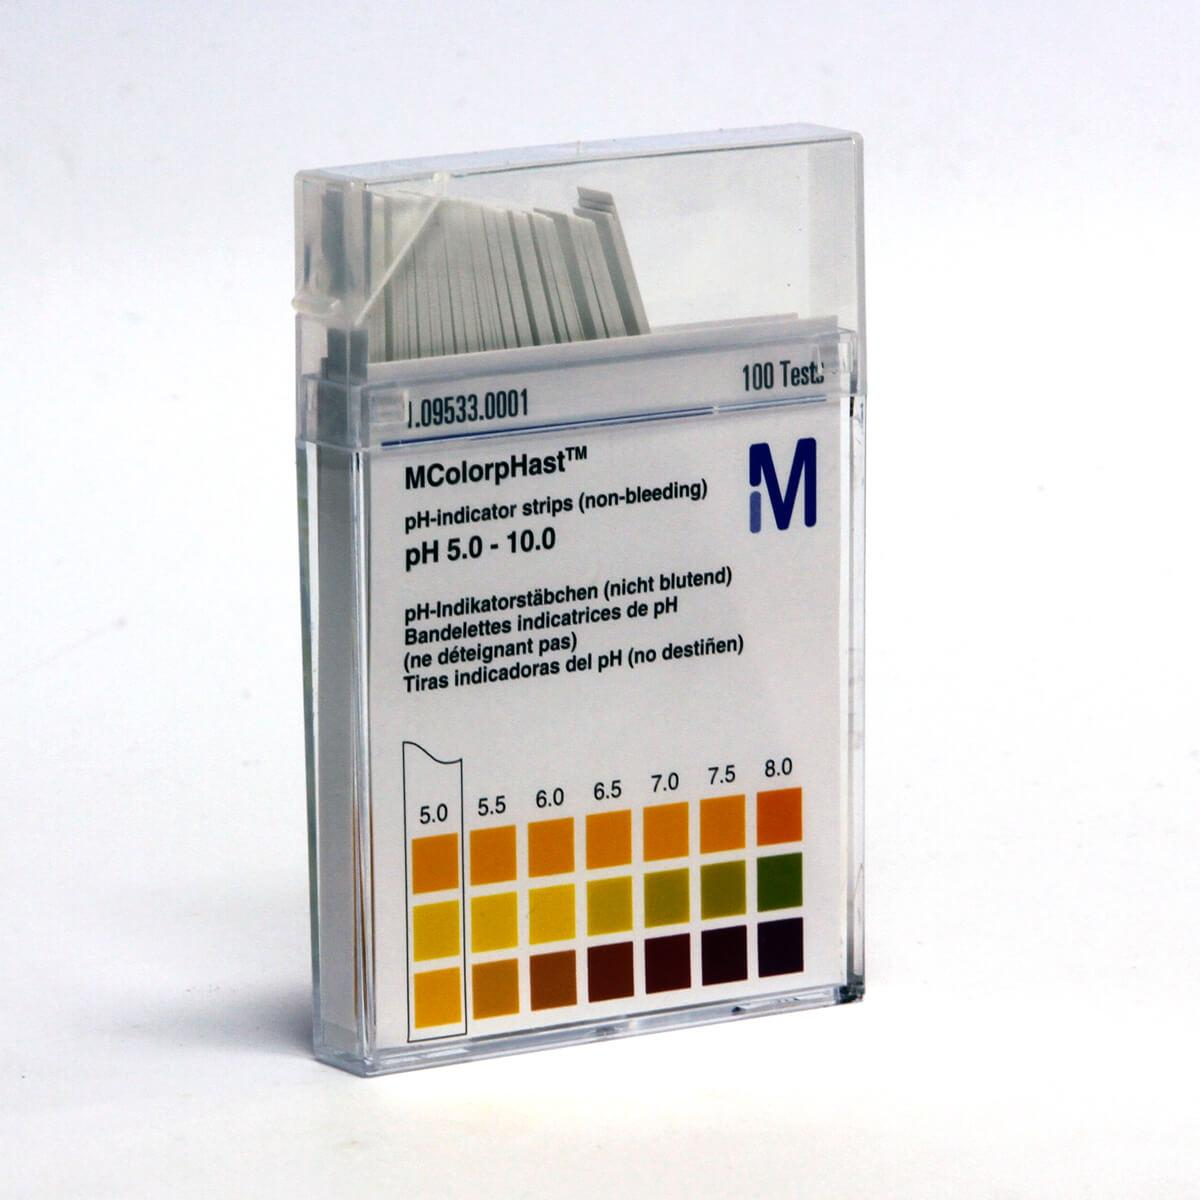 colorphast ph indicator strips instructions